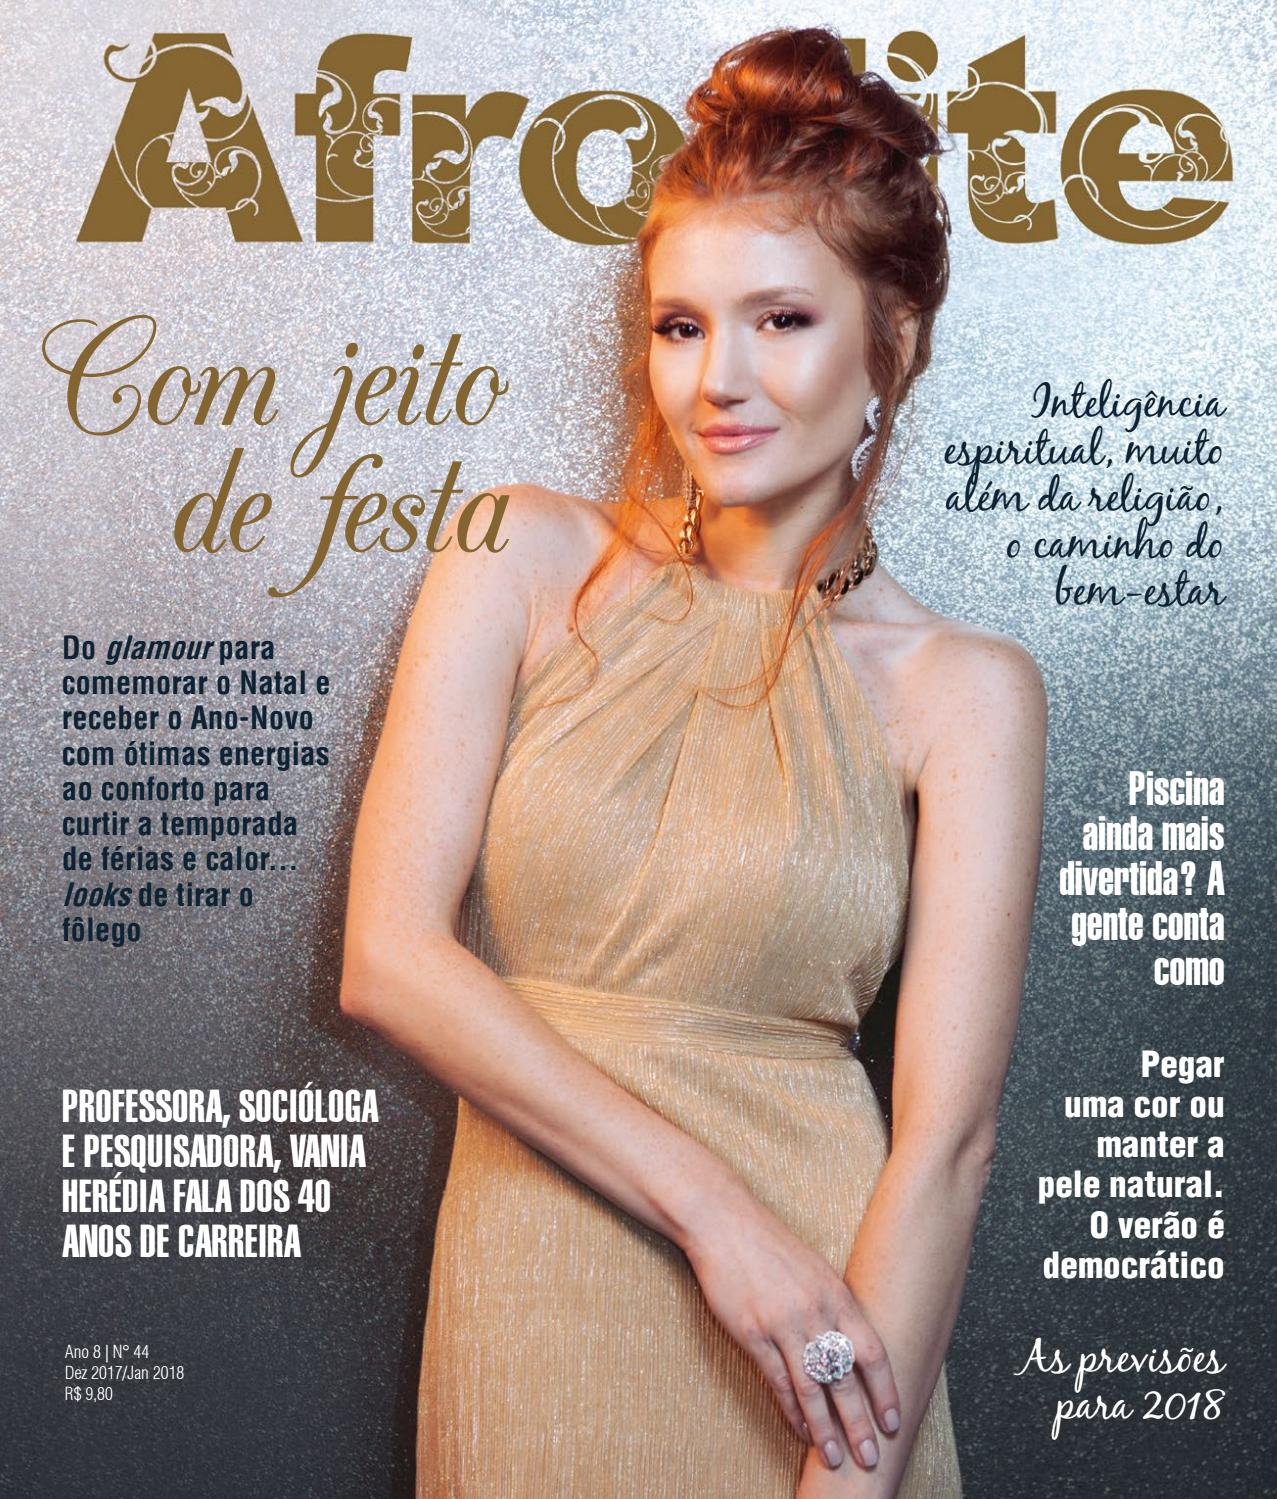 98d69ad0393df Afrodite by RevistaAfrodite - issuu